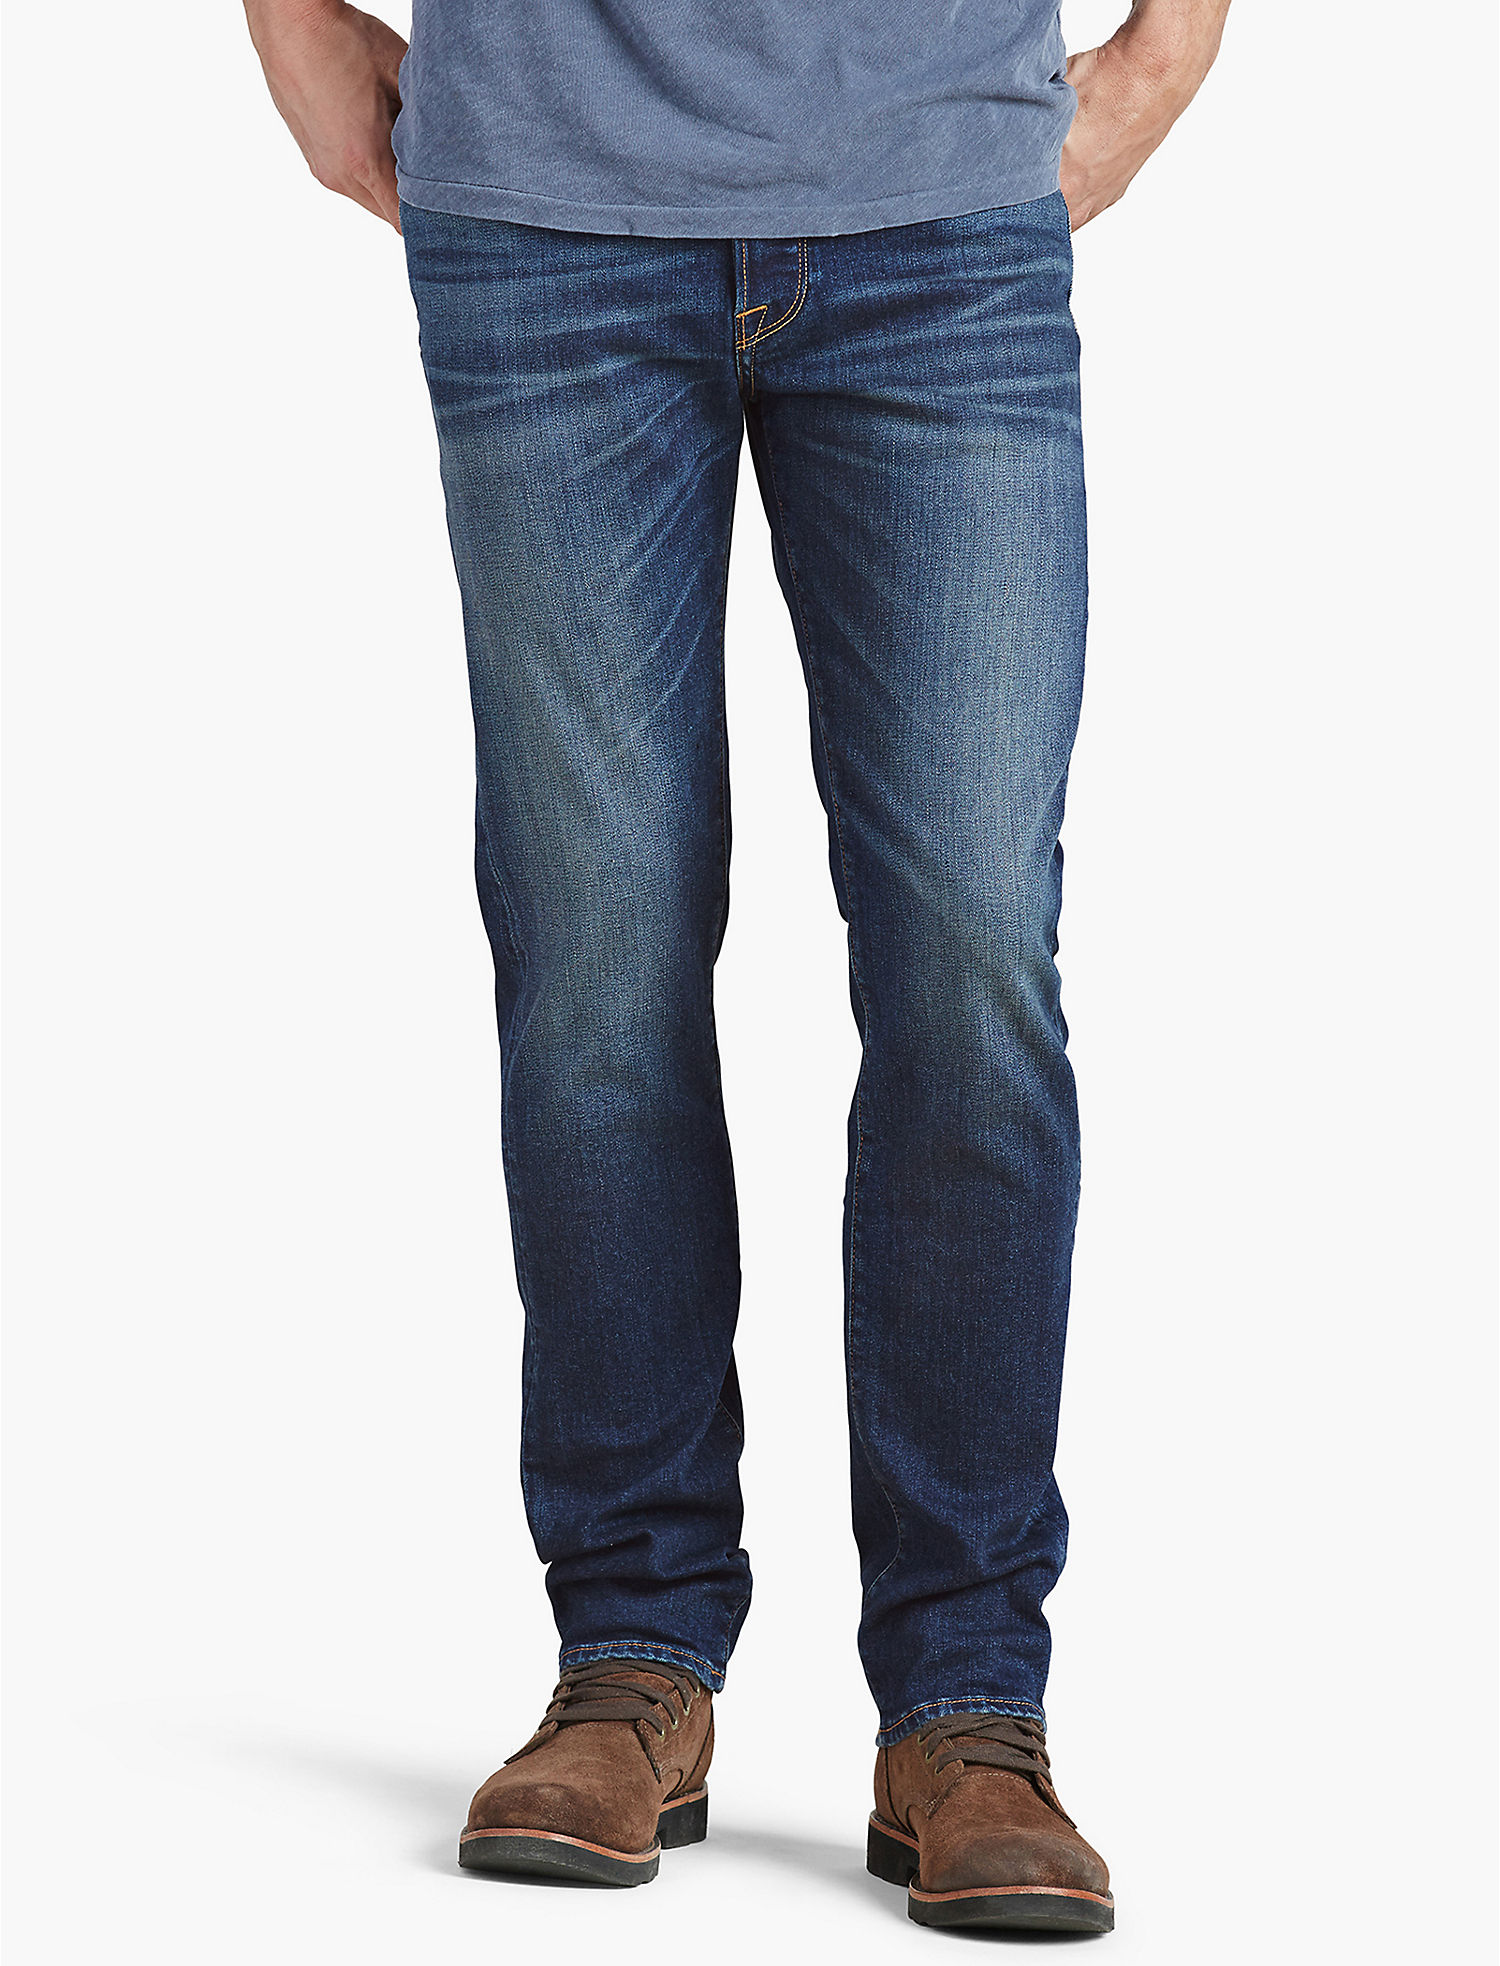 Mens jeans design legends jeans - Lucky 1 Authentic Skinny